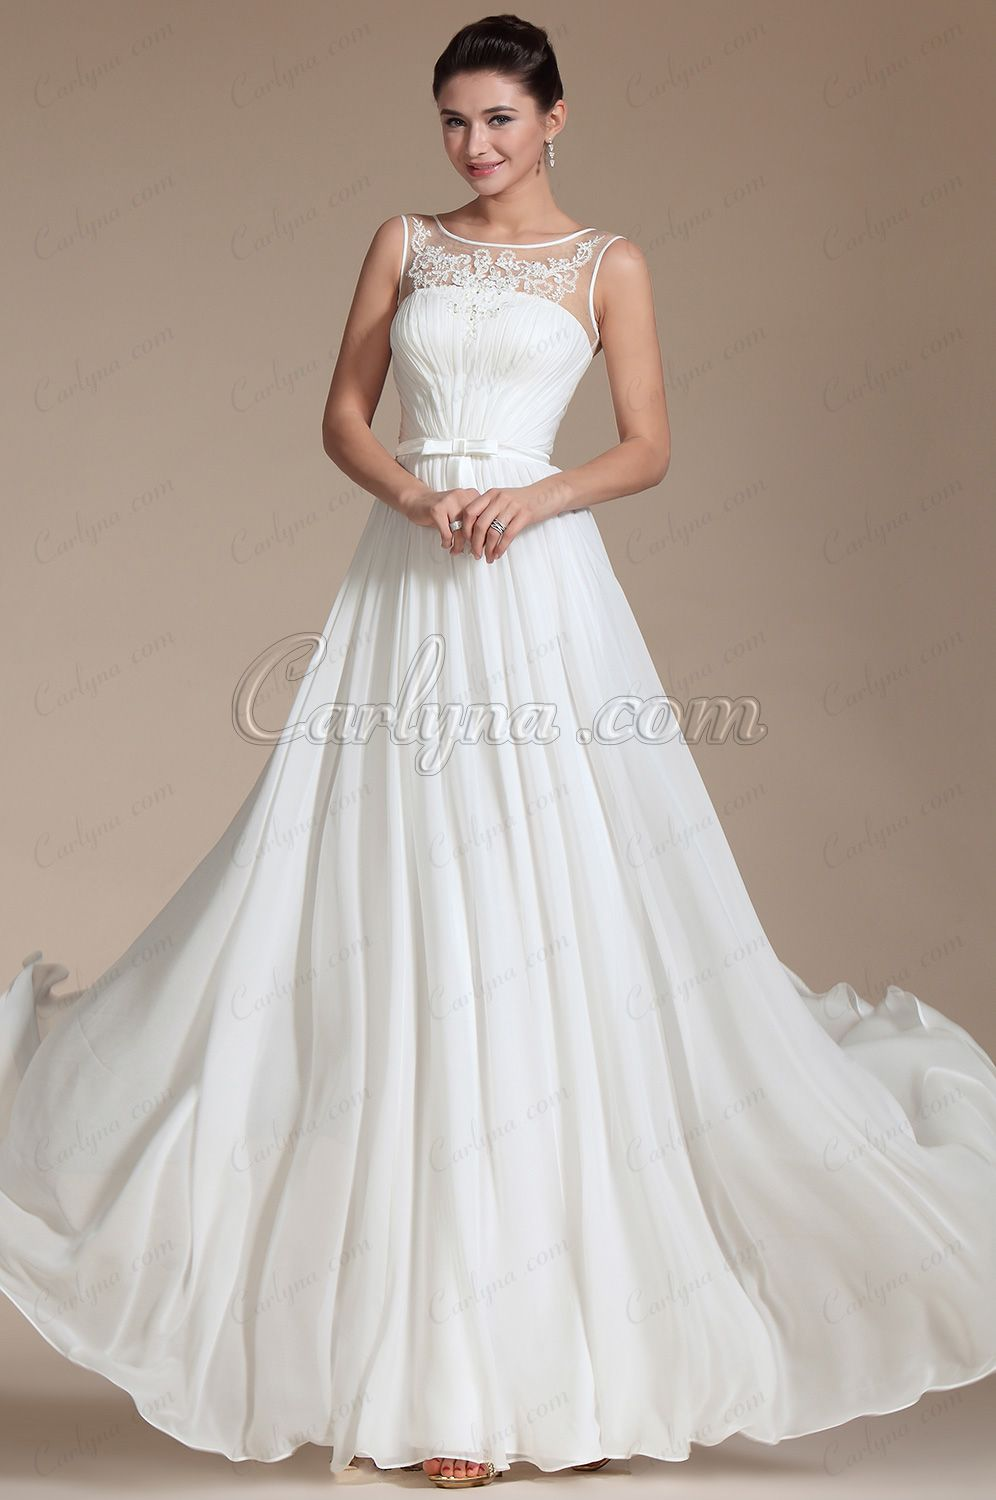 Sheer top wedding dress  USD  Sheer Top Lace Decoration Evening Gown C